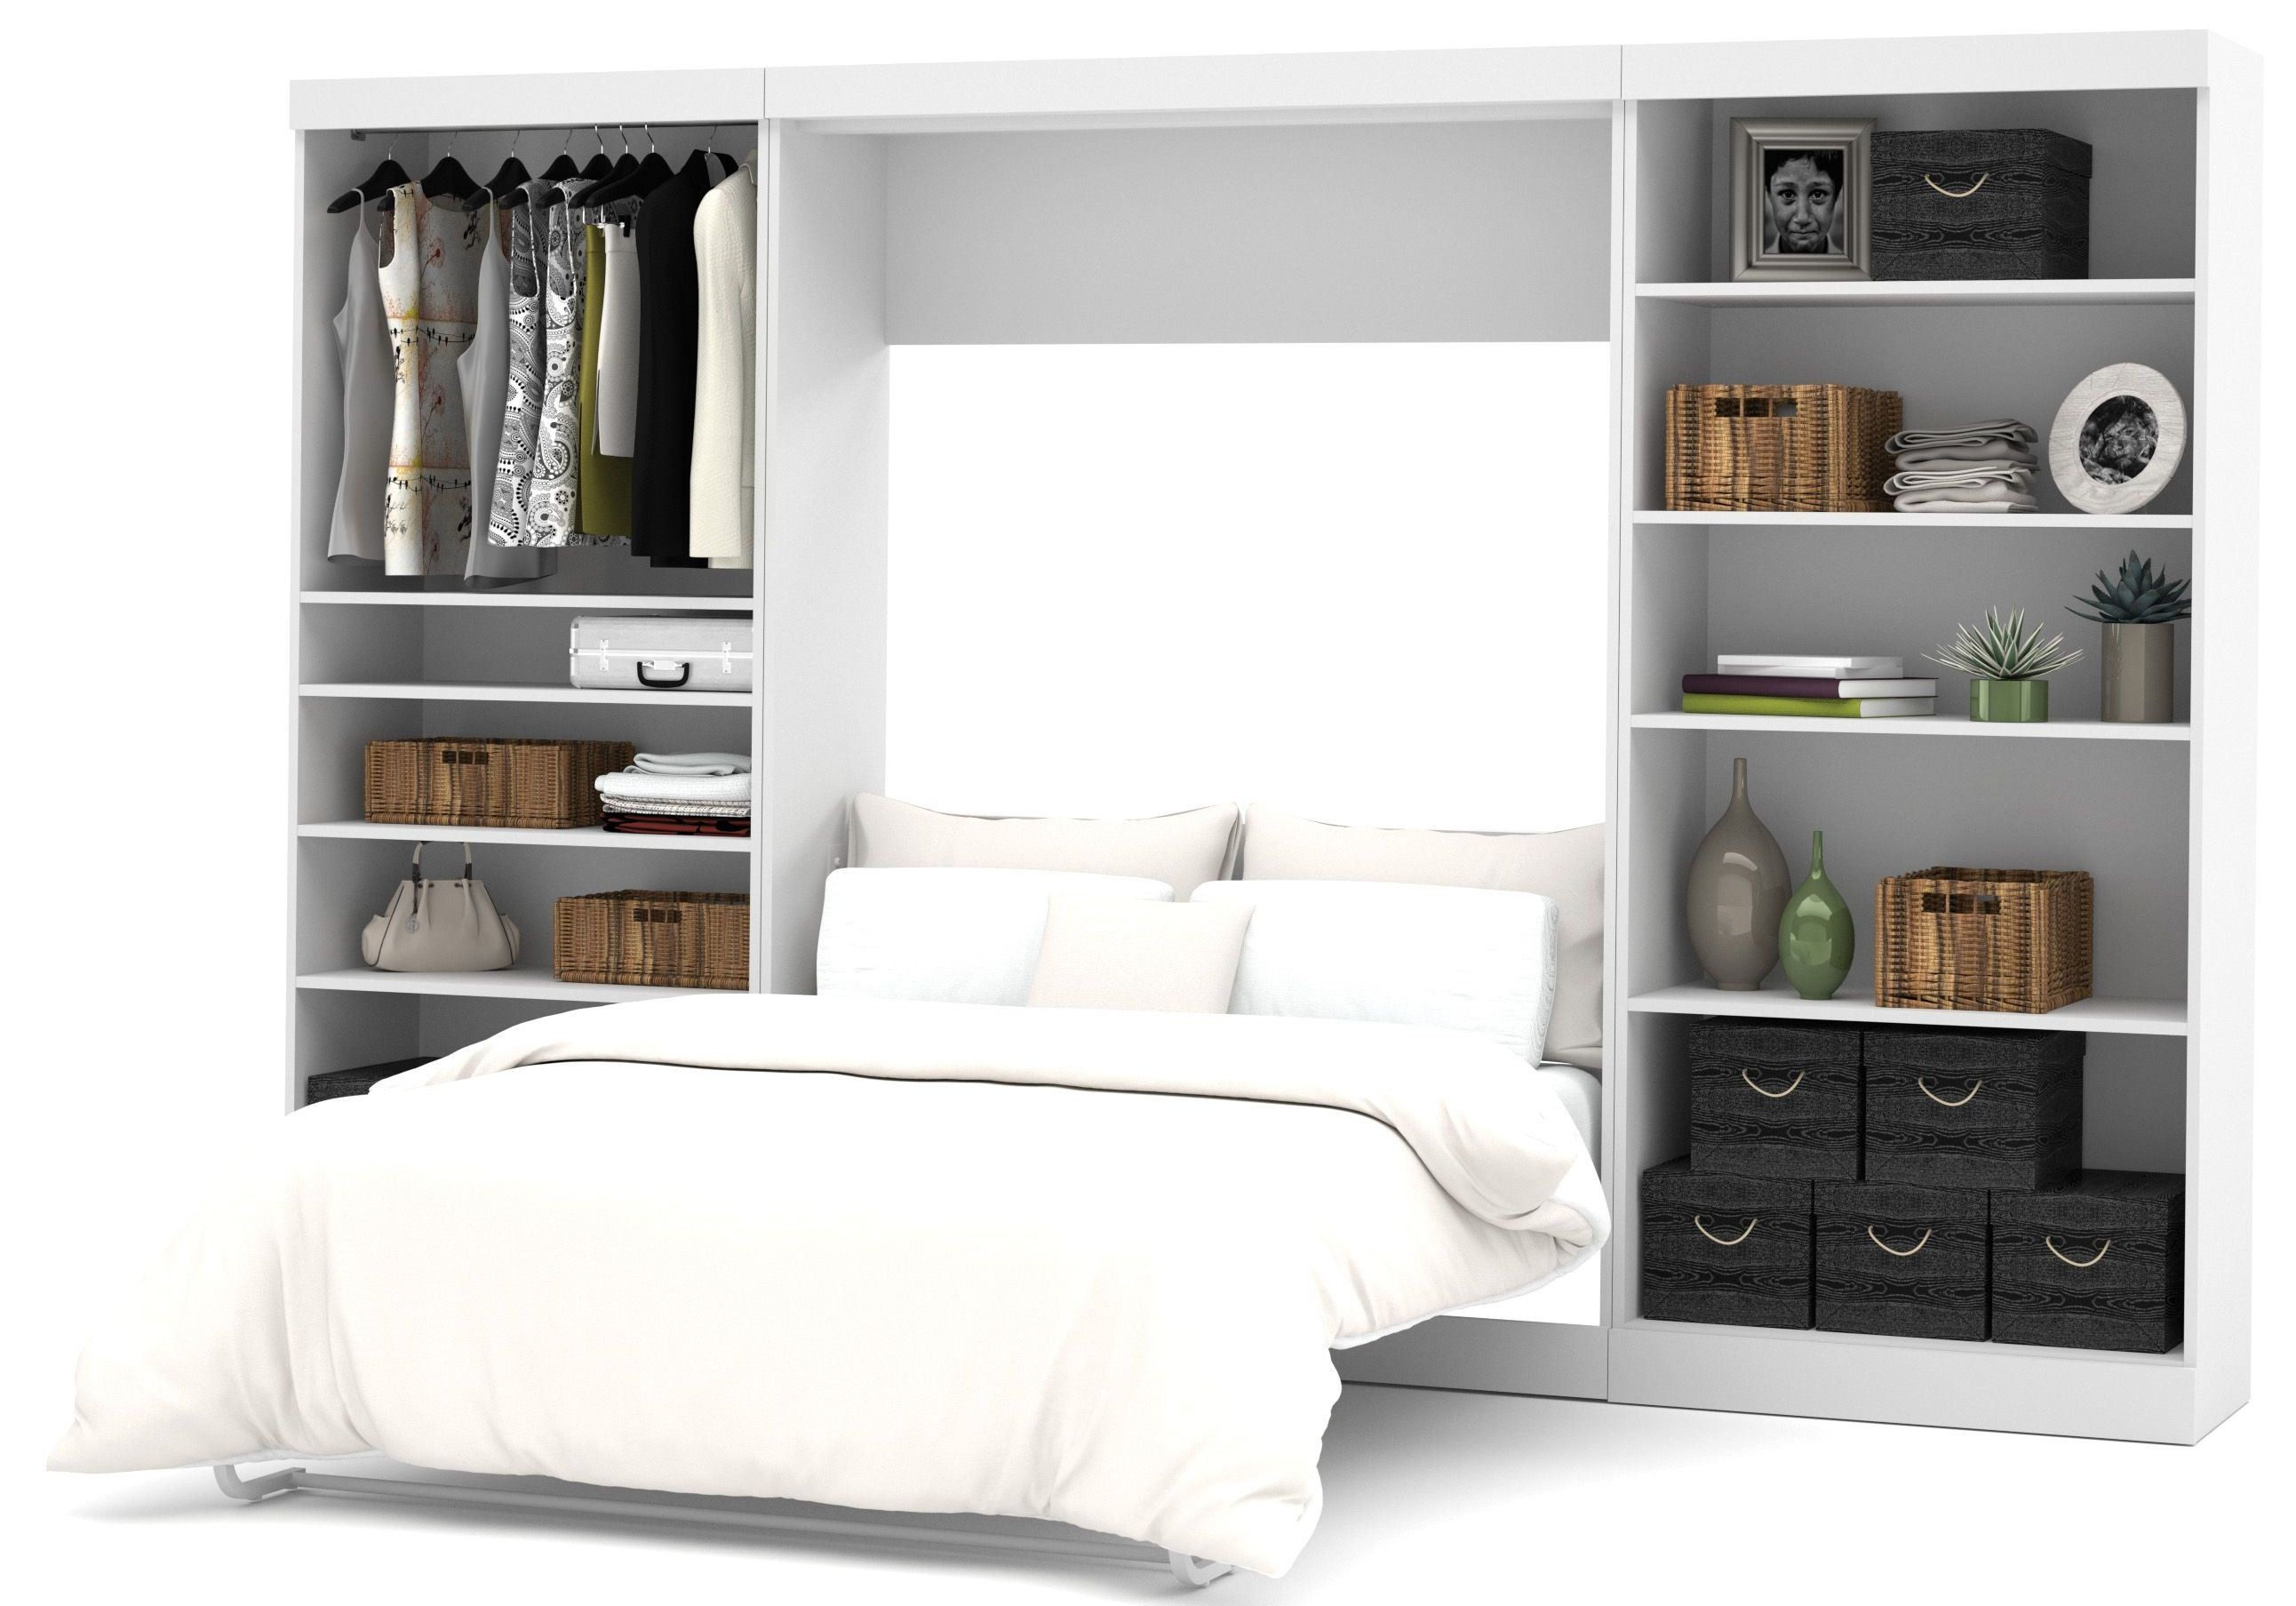 Pure White 131 Open Storage Full Wall Bed From Bestar 26895 17 Cole